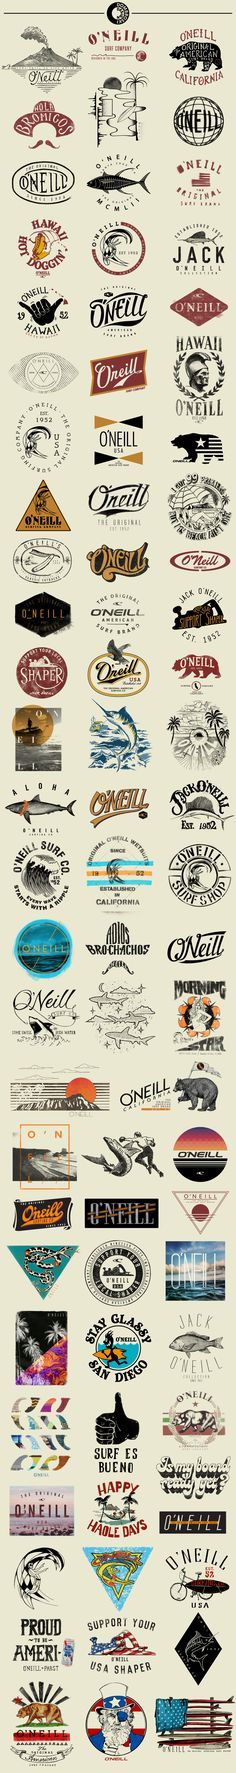 Logos ideas / O'Neill T-Shirt Graphics by Ray Dombroski. O'Neill is known as the Original American Surfing Company. It began as a wetsuit company and surf shop, founded by Jack O'Neill in It continues to be one of the most sought-after surf brands today. Photoshop, Logos Online, Inspiration Logo Design, Design Ideas, Logo Luxury, Surf Logo, Beach Logo, Schrift Tattoos, Badge Logo